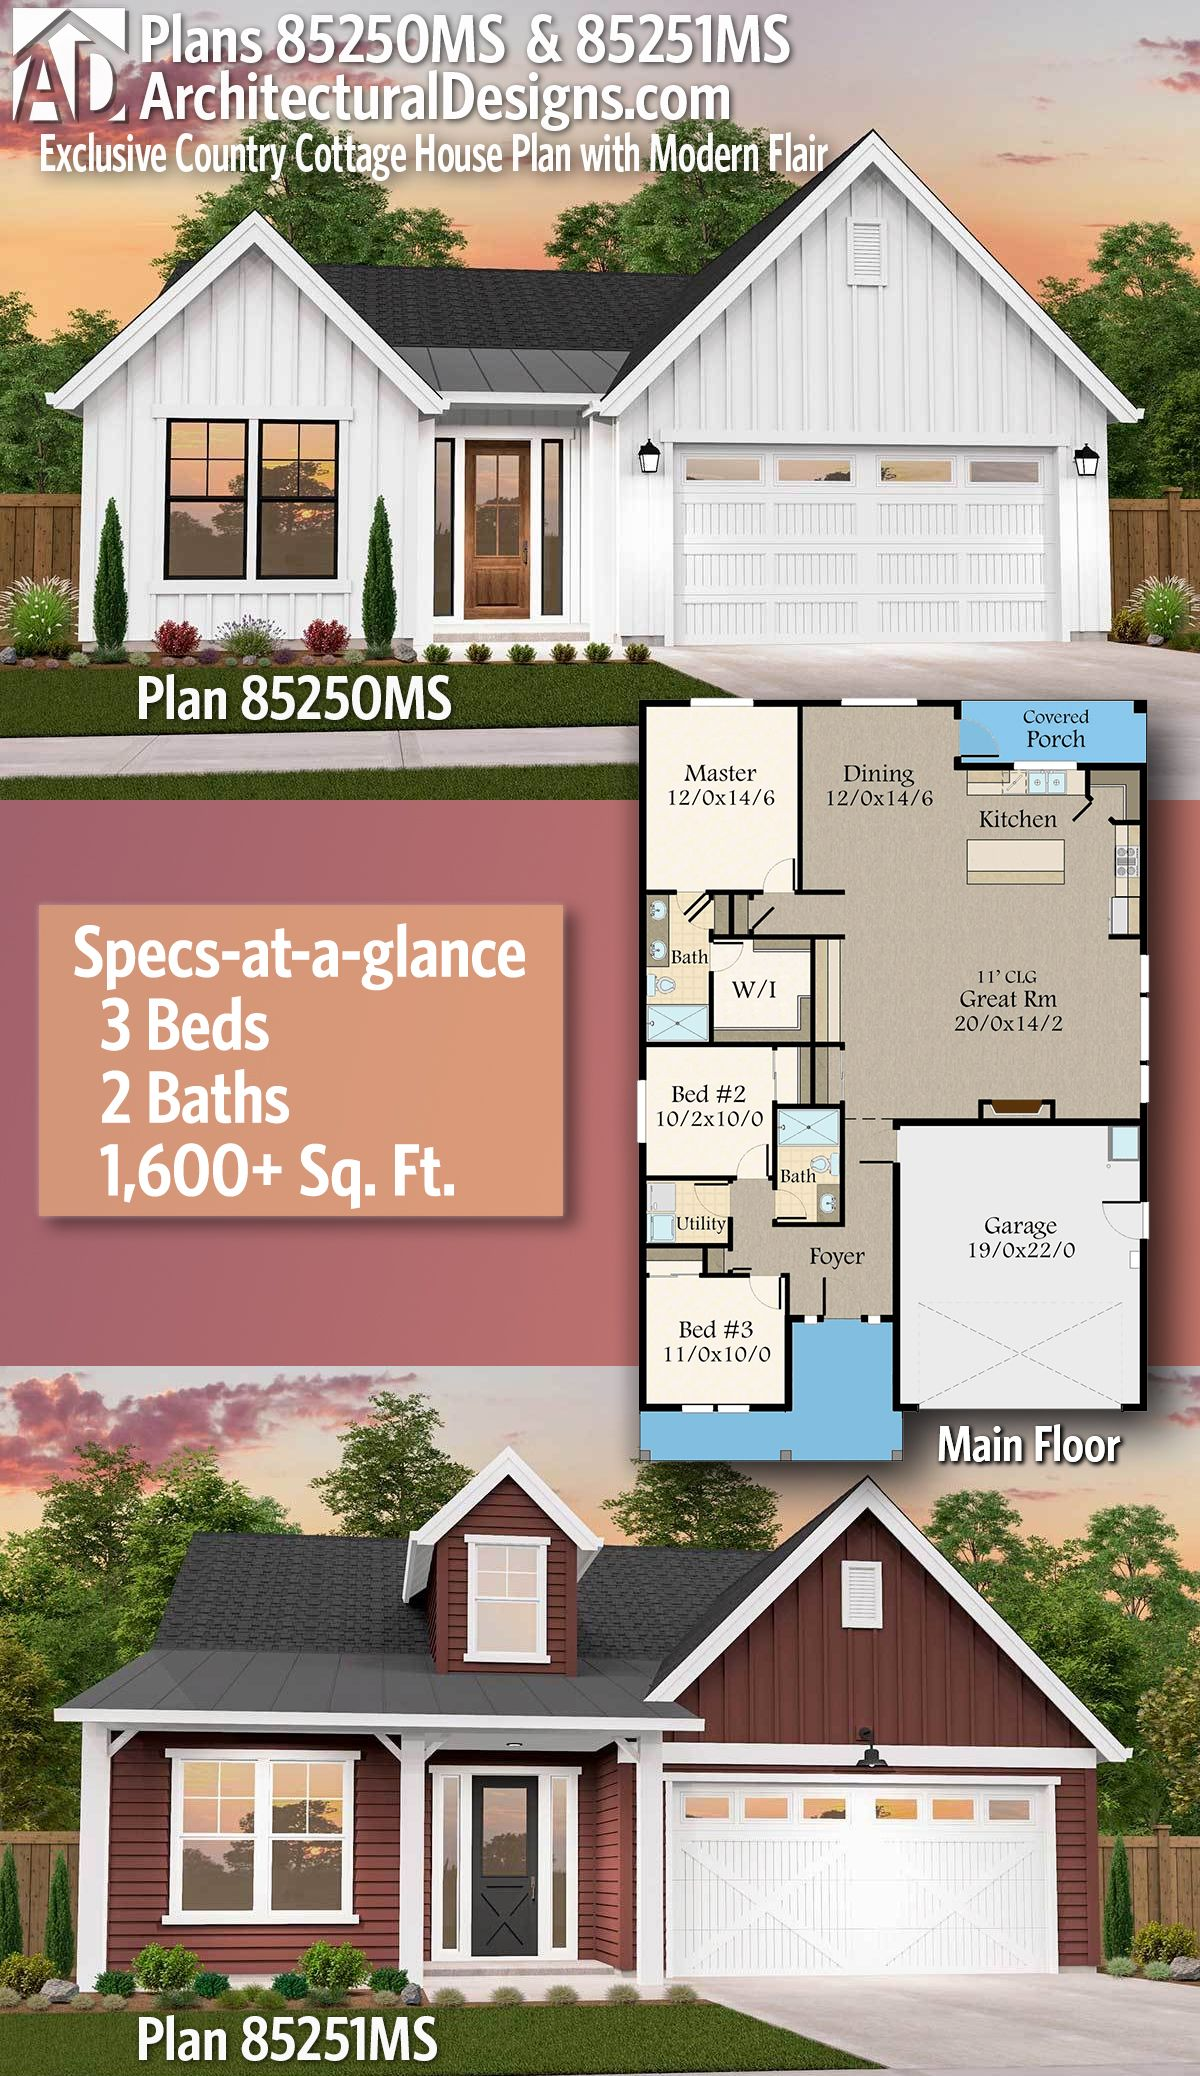 Architectural Designs Exclusive Affordable Farmhouse Plan 85250Ms & 85251Ms -